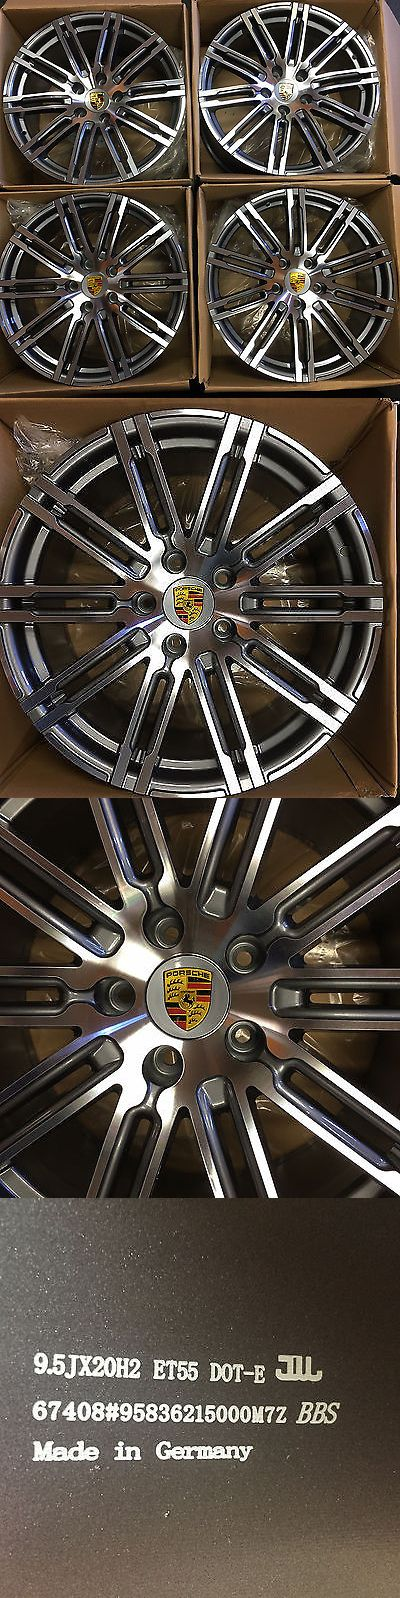 auto parts - general: 20 Porsche Cayenne Turbo S 2016 Hybrid Wheels Rims New Oem Polished Set Of 4 BUY IT NOW ONLY: $1395.0